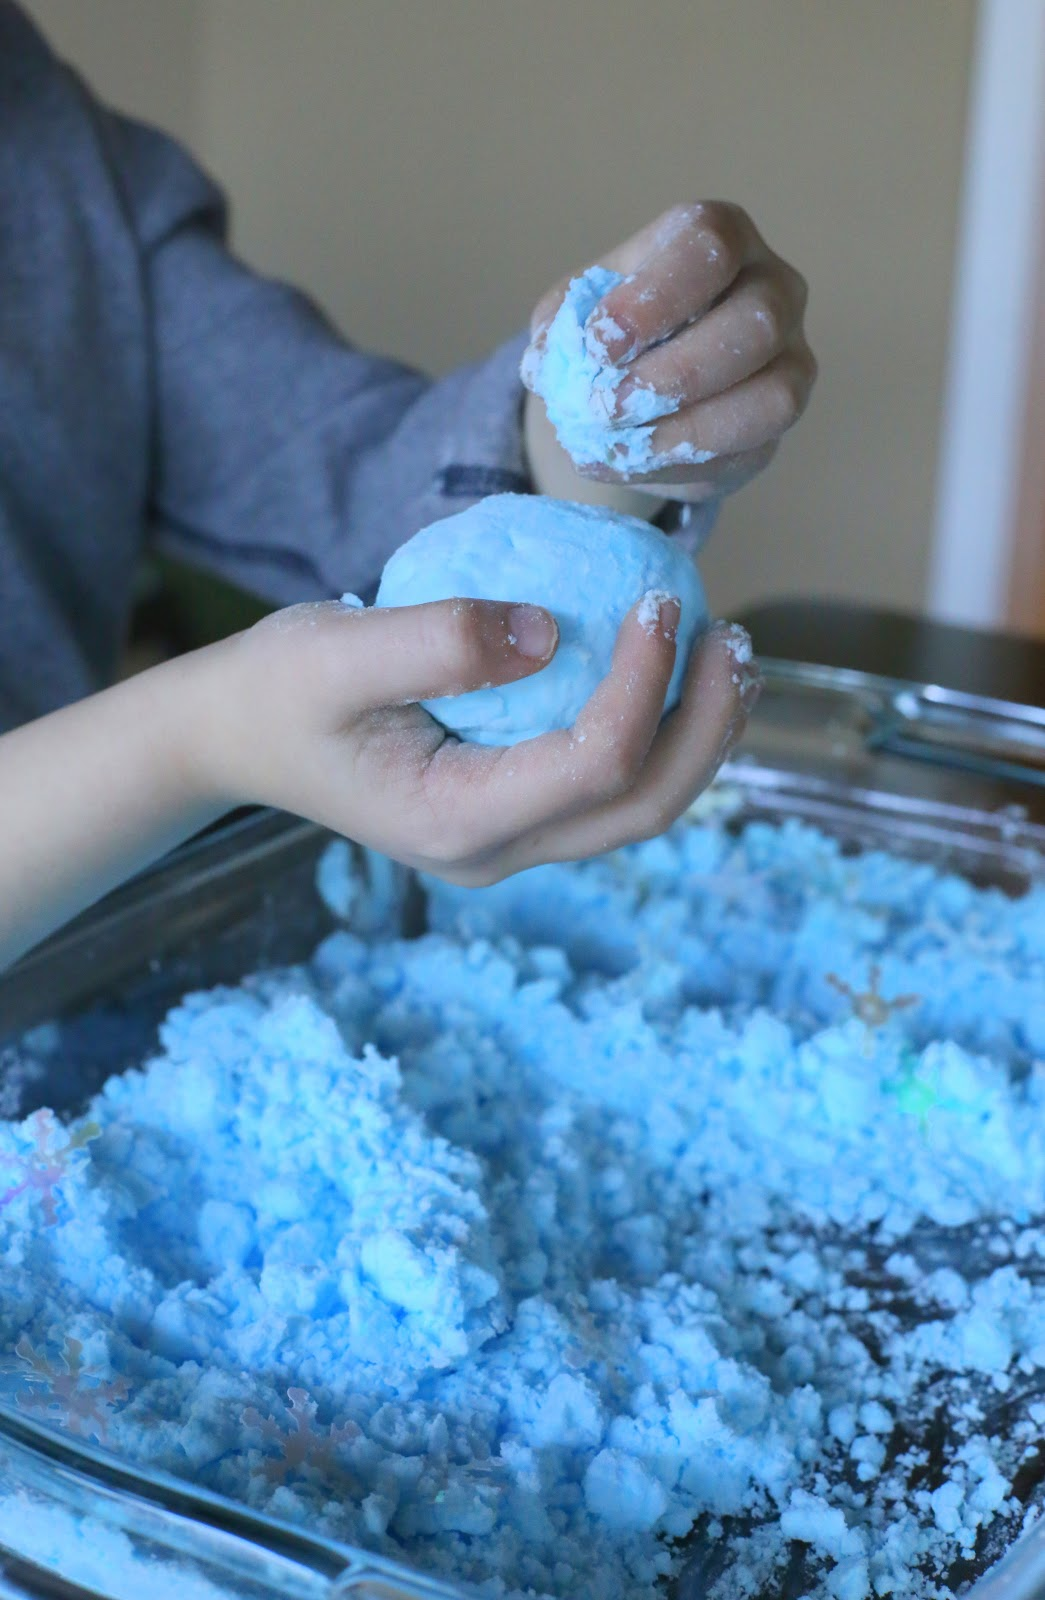 A new sensory play recipe for Magic Puffing Snow - it slowly puffs up and will even re-puff after it's been compressed.  From Fun at Home with Kids